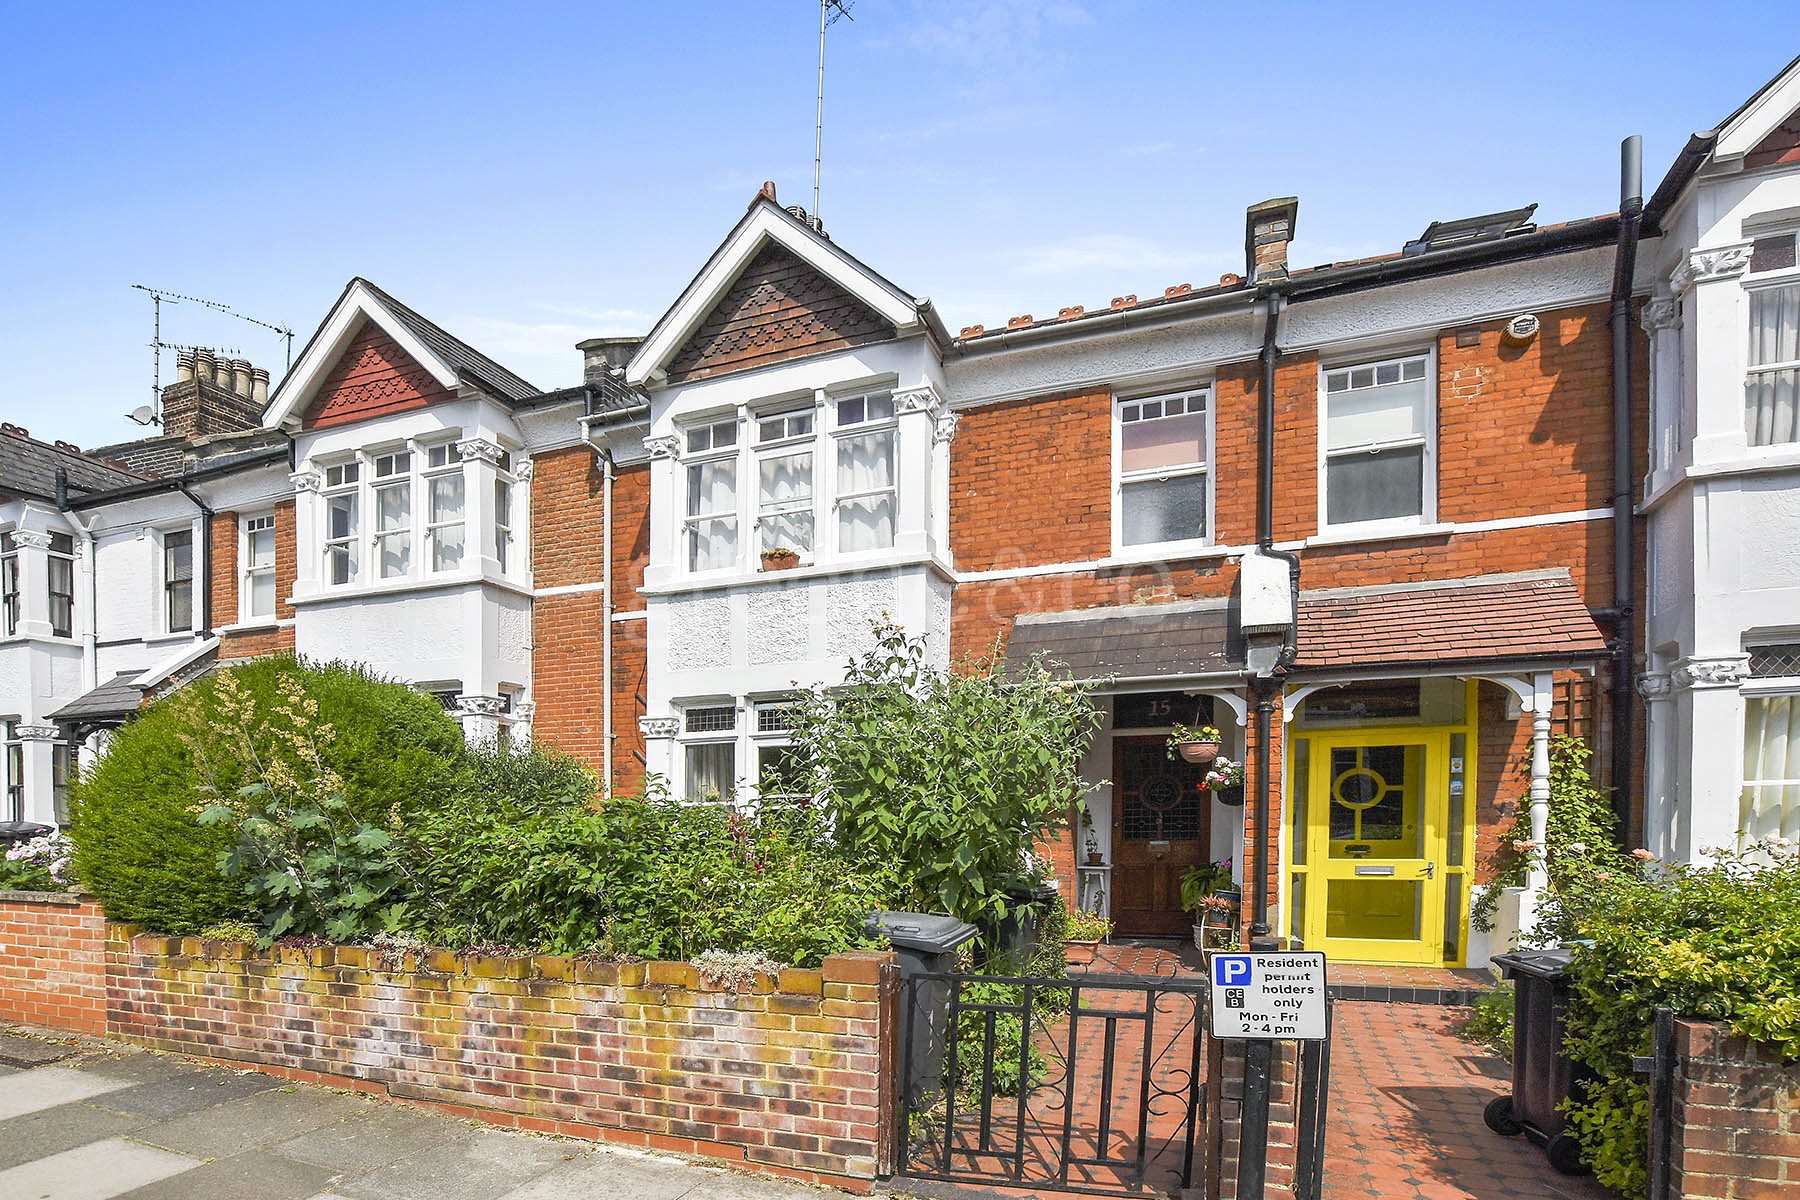 4 Bedrooms House for sale in Glasslyn Road, Crouch End, London, N8